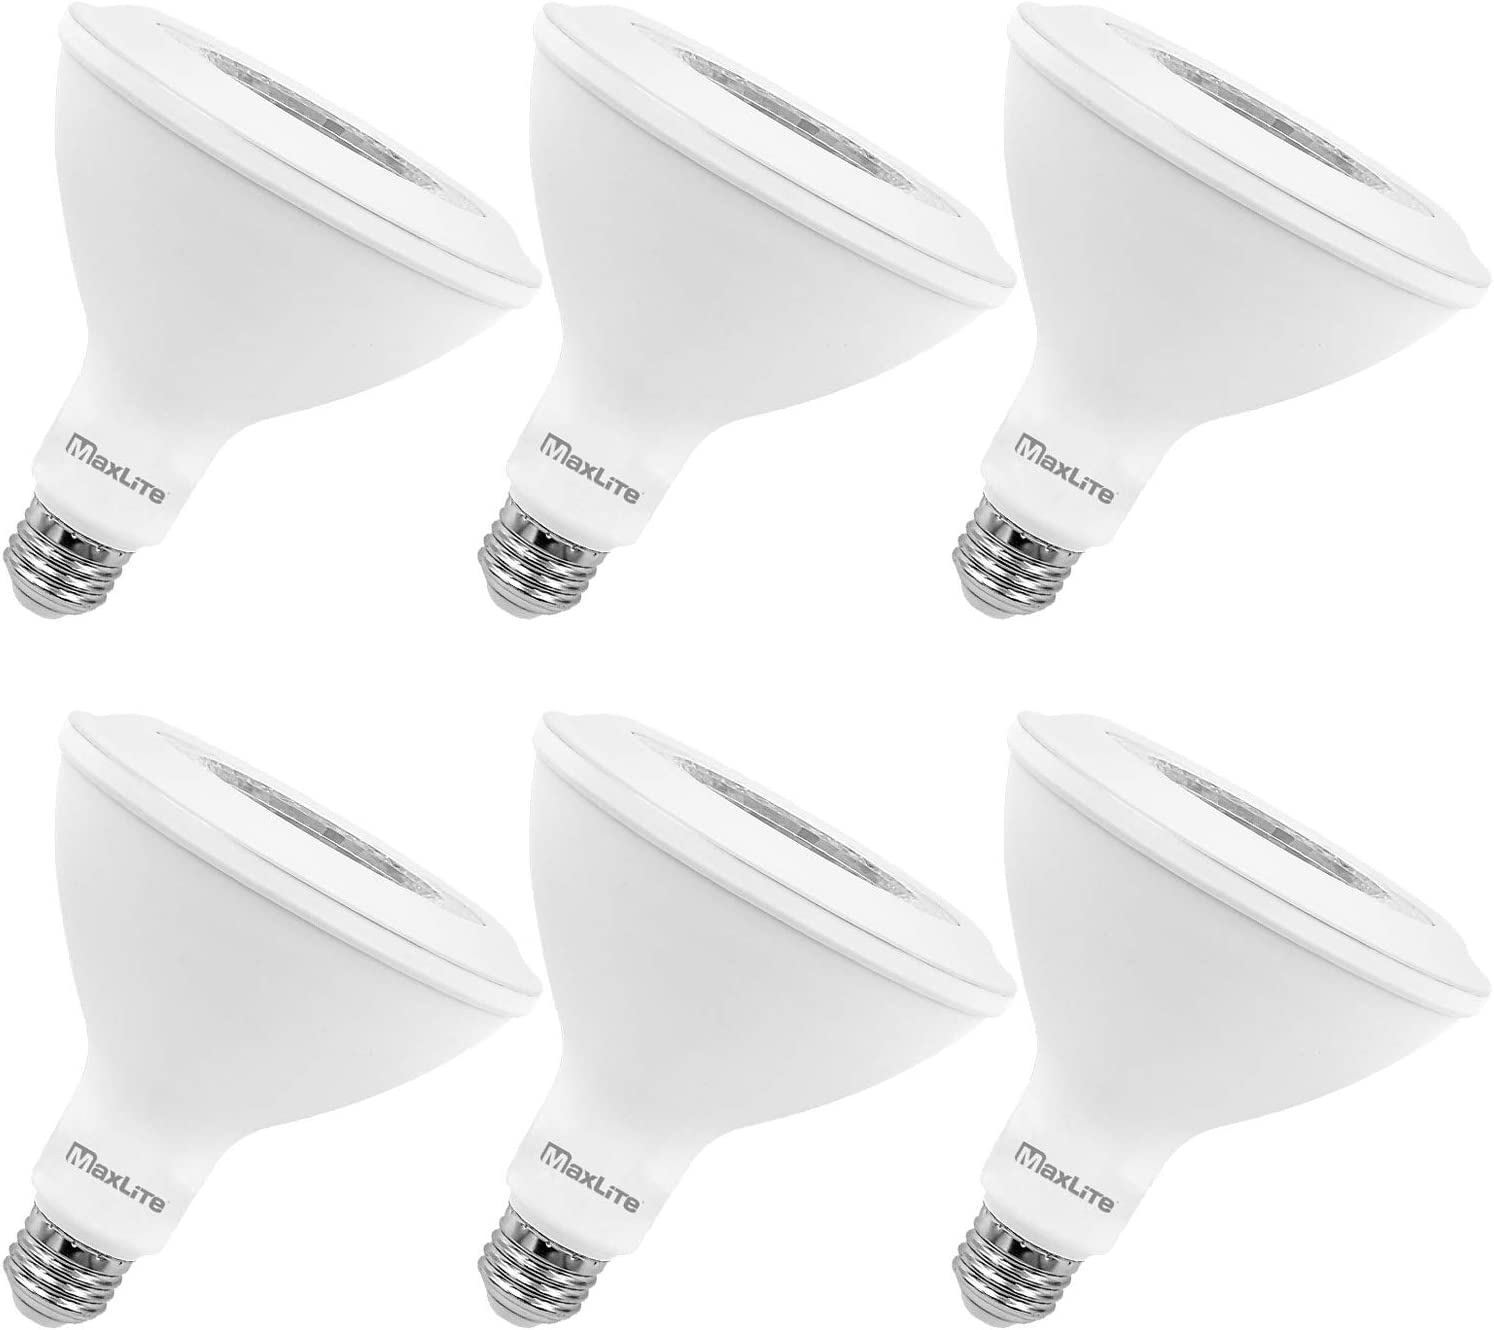 MaxLite PAR38 LED Flood Light Bulb, 90W Equivalent, Daylight 5000K, 950 Lumens, Dimmable, Wet Rated, Enclosed Fixture Rated, Energy Star, UL Listed, E26 Medium Base, 6-Pack